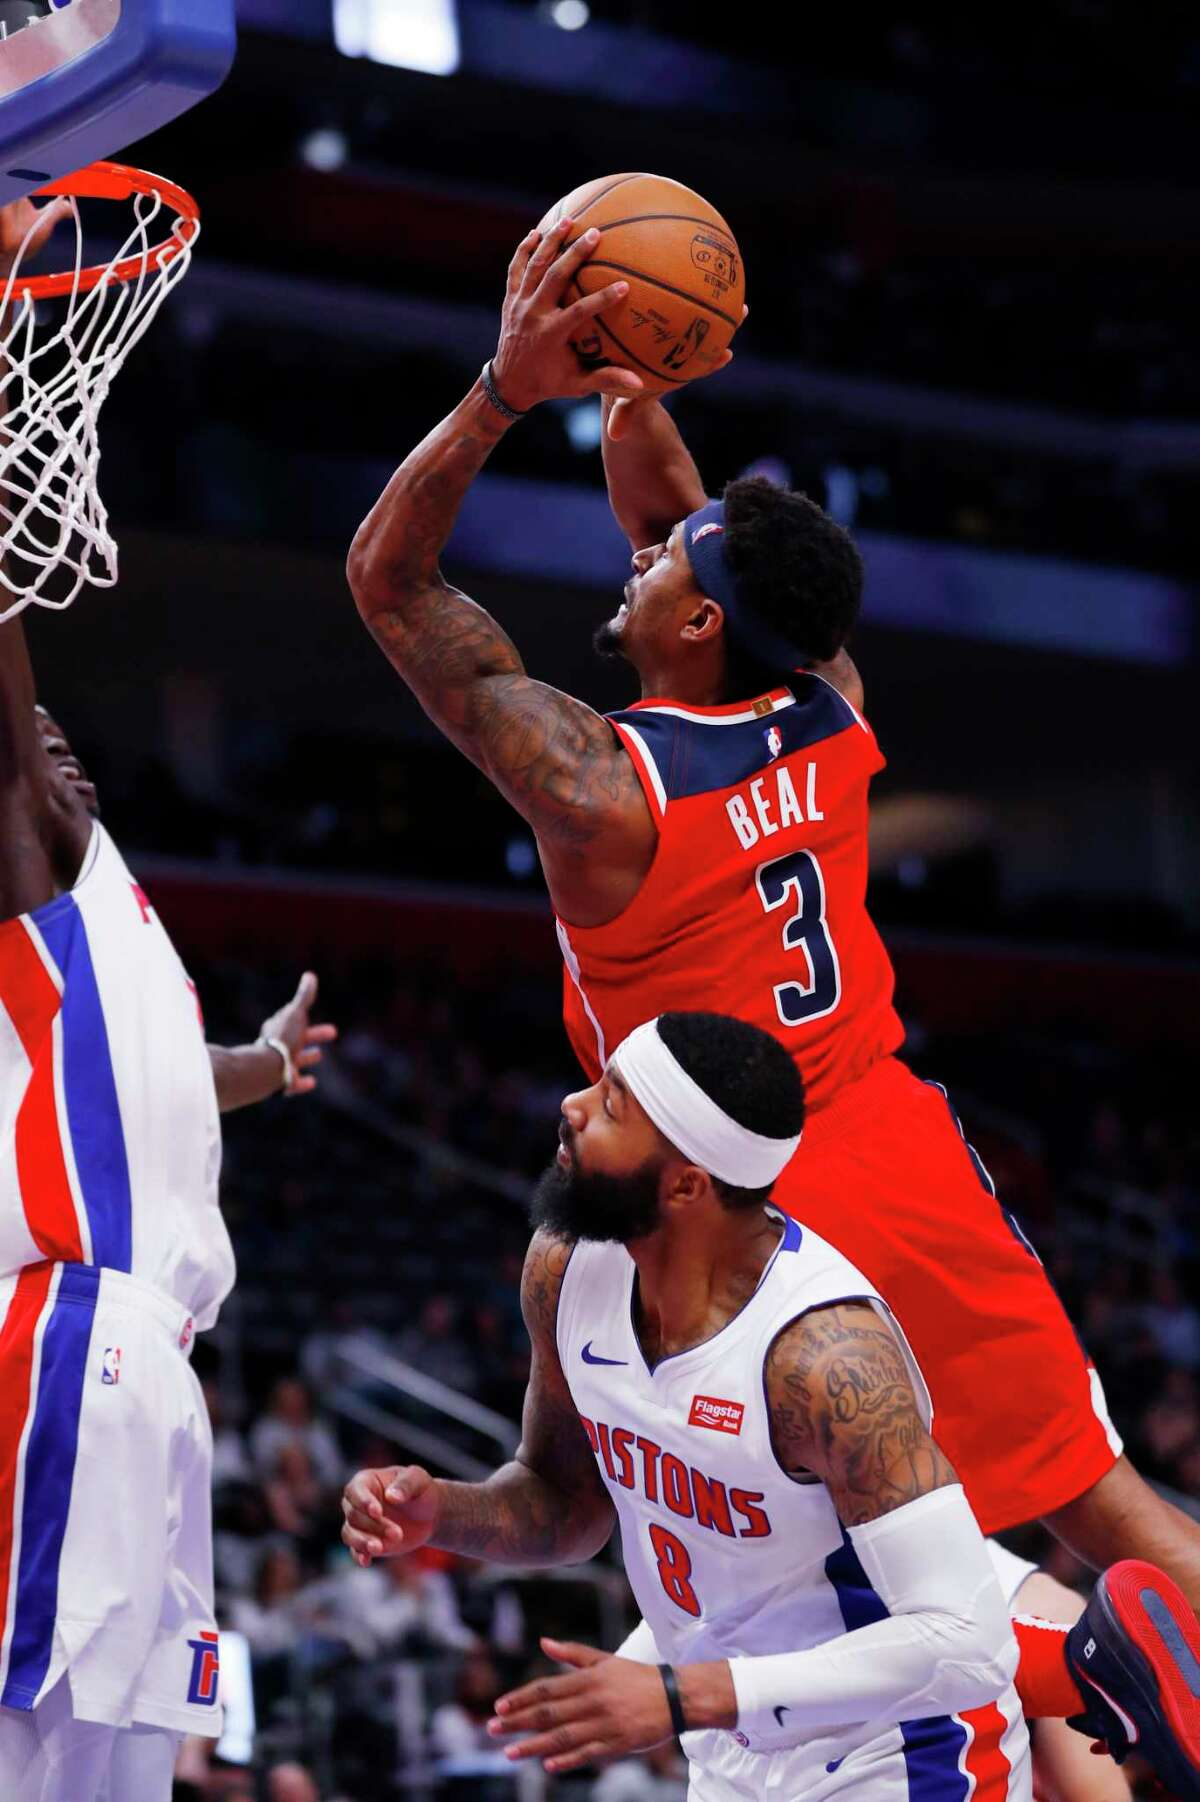 Washington Wizards guard Bradley Beal (3) drives on Detroit Pistons forward Markieff Morris (8) in the second half of an NBA basketball game in Detroit, Monday, Dec. 16, 2019. (AP Photo/Paul Sancya)